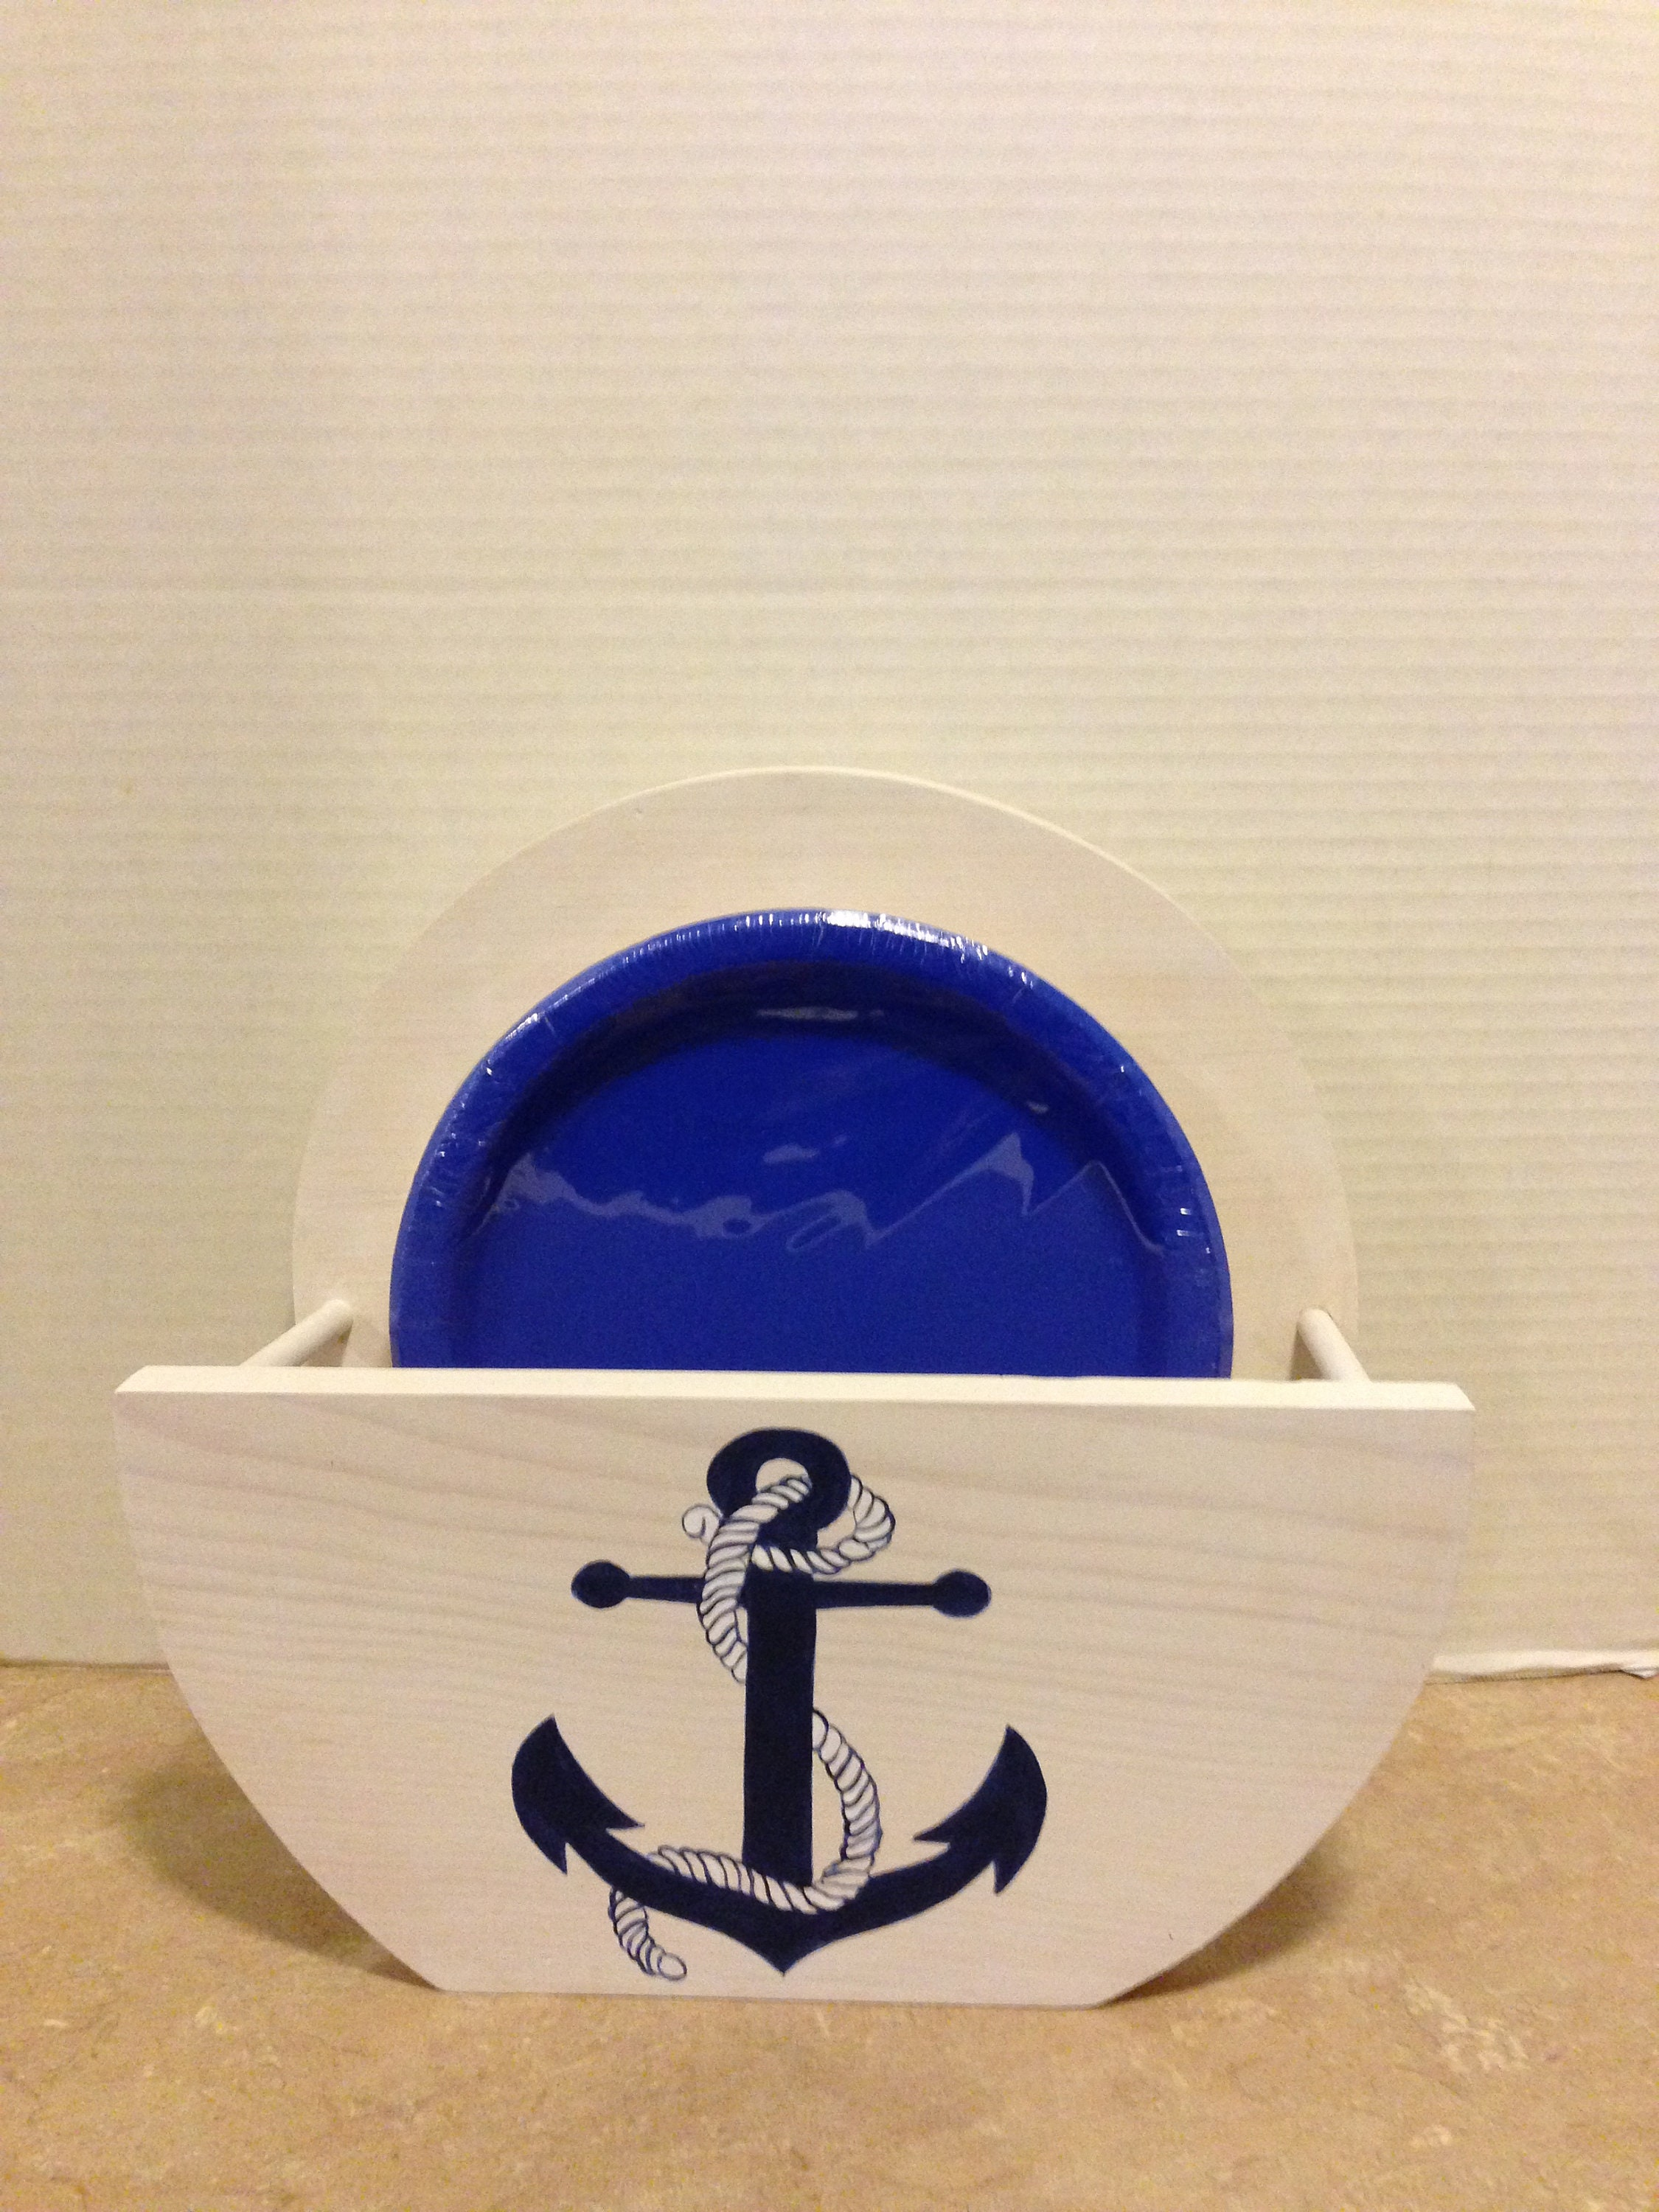 Paper Plate Holder Wooden Plate Holder Holder for plates Nautical Kitchen Nautical Decor Nautical Anchor Mothers day gift Nautical & Paper Plate Holder Wooden Plate Holder Holder for plates Nautical ...